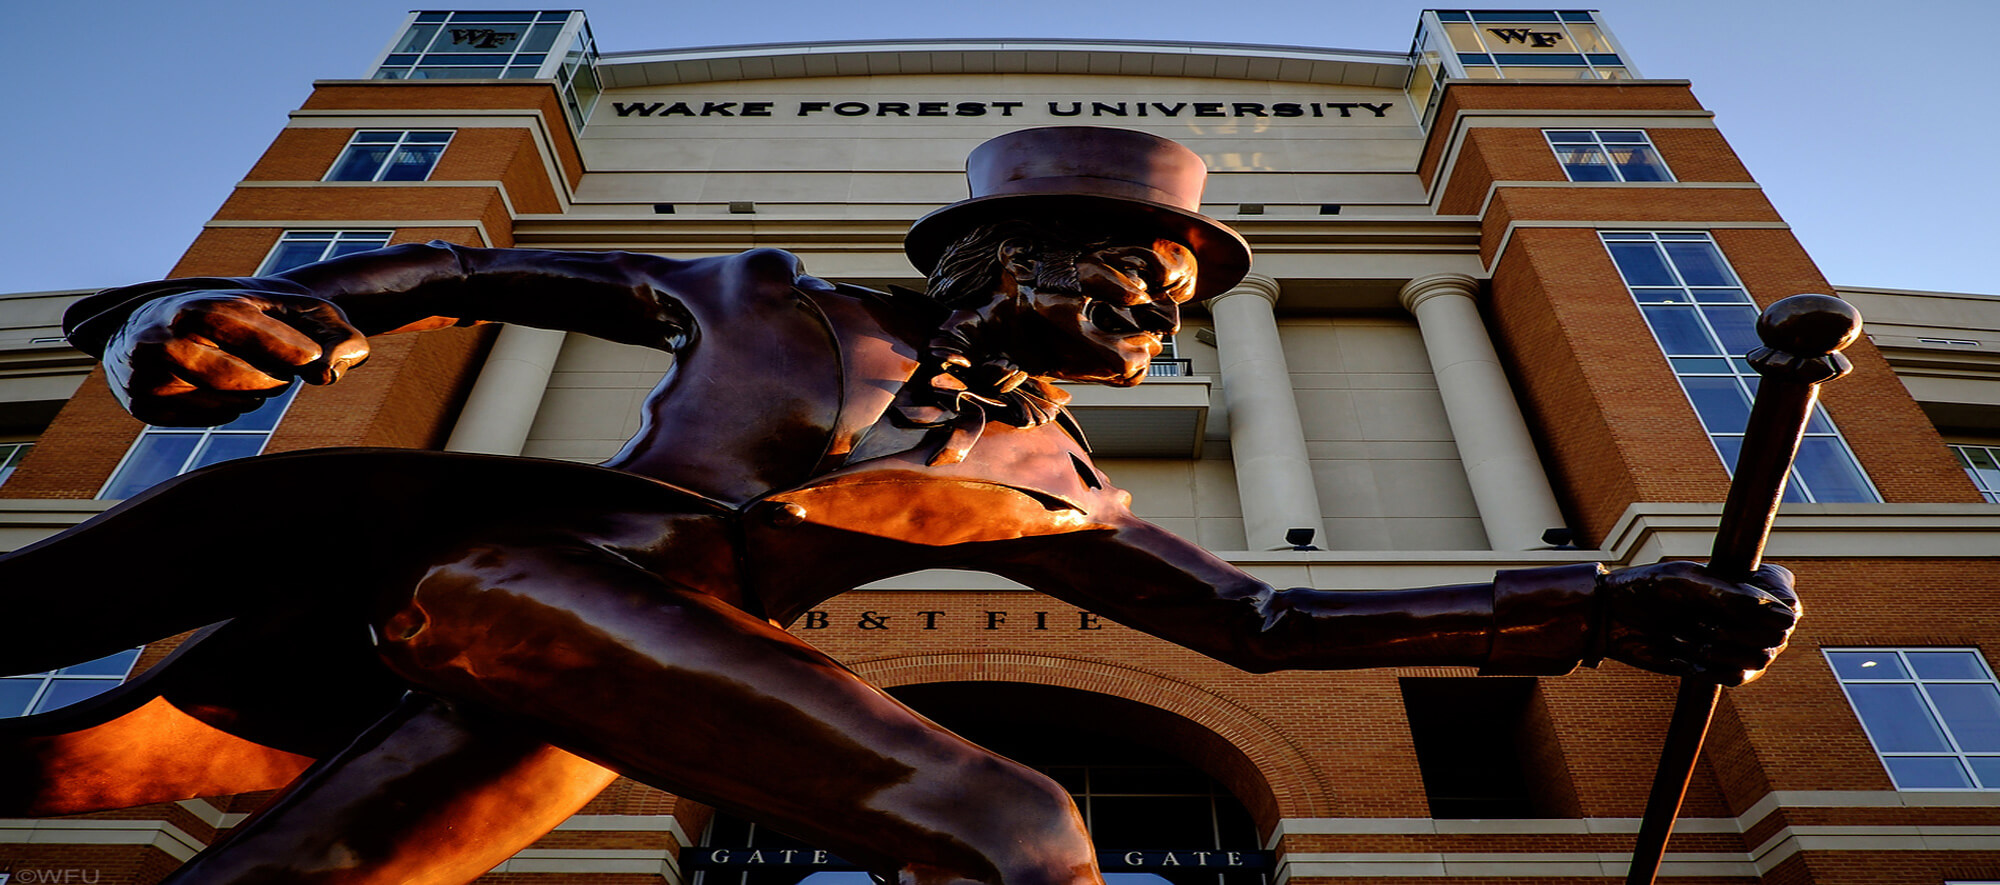 3D Tour of The Wake Forest BB&T Football Stadium, Field House, and the Exclusive Deacon Tower